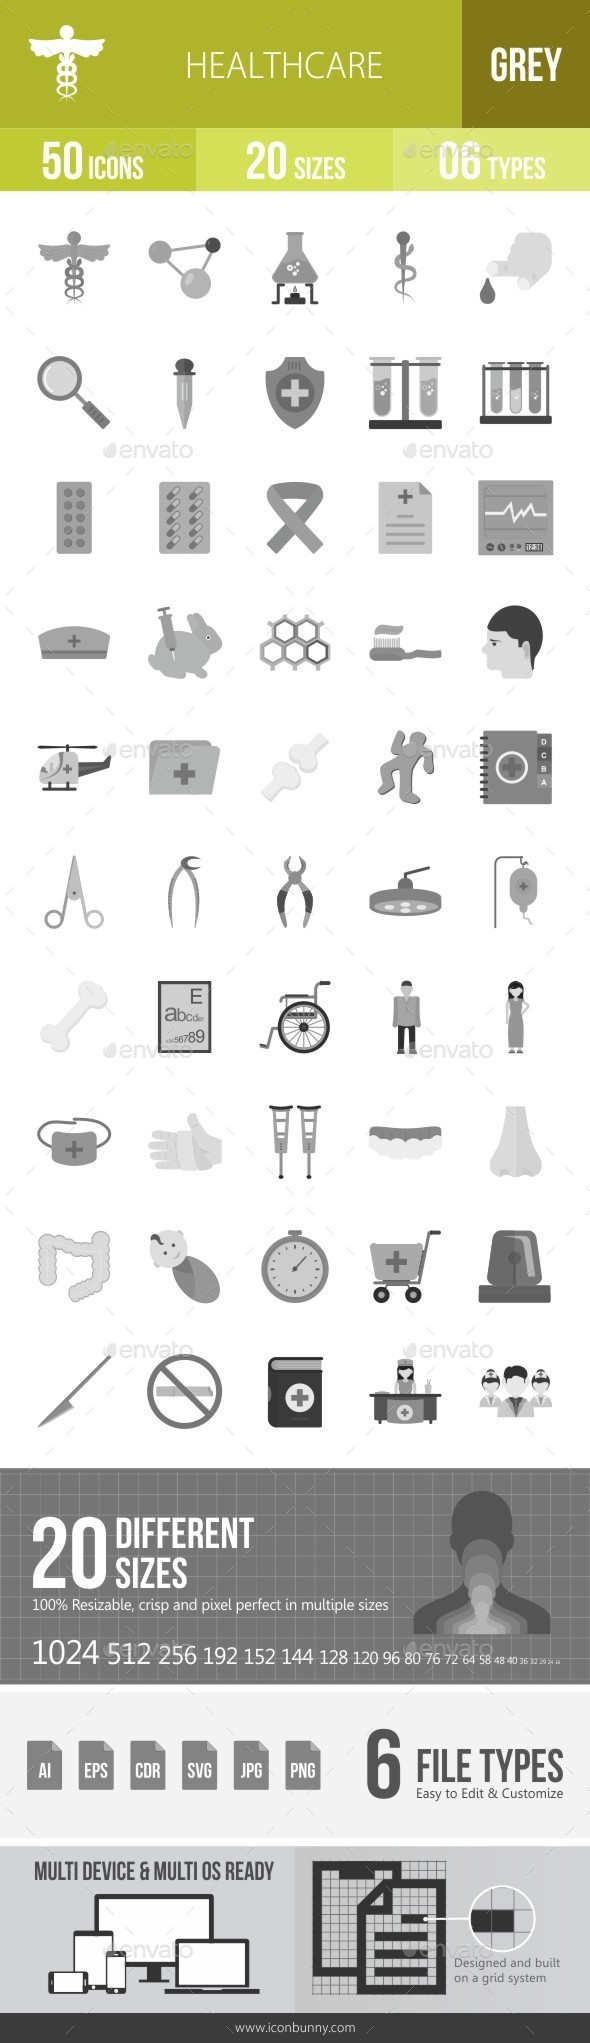 Healthcare Greyscale Icons - Icons